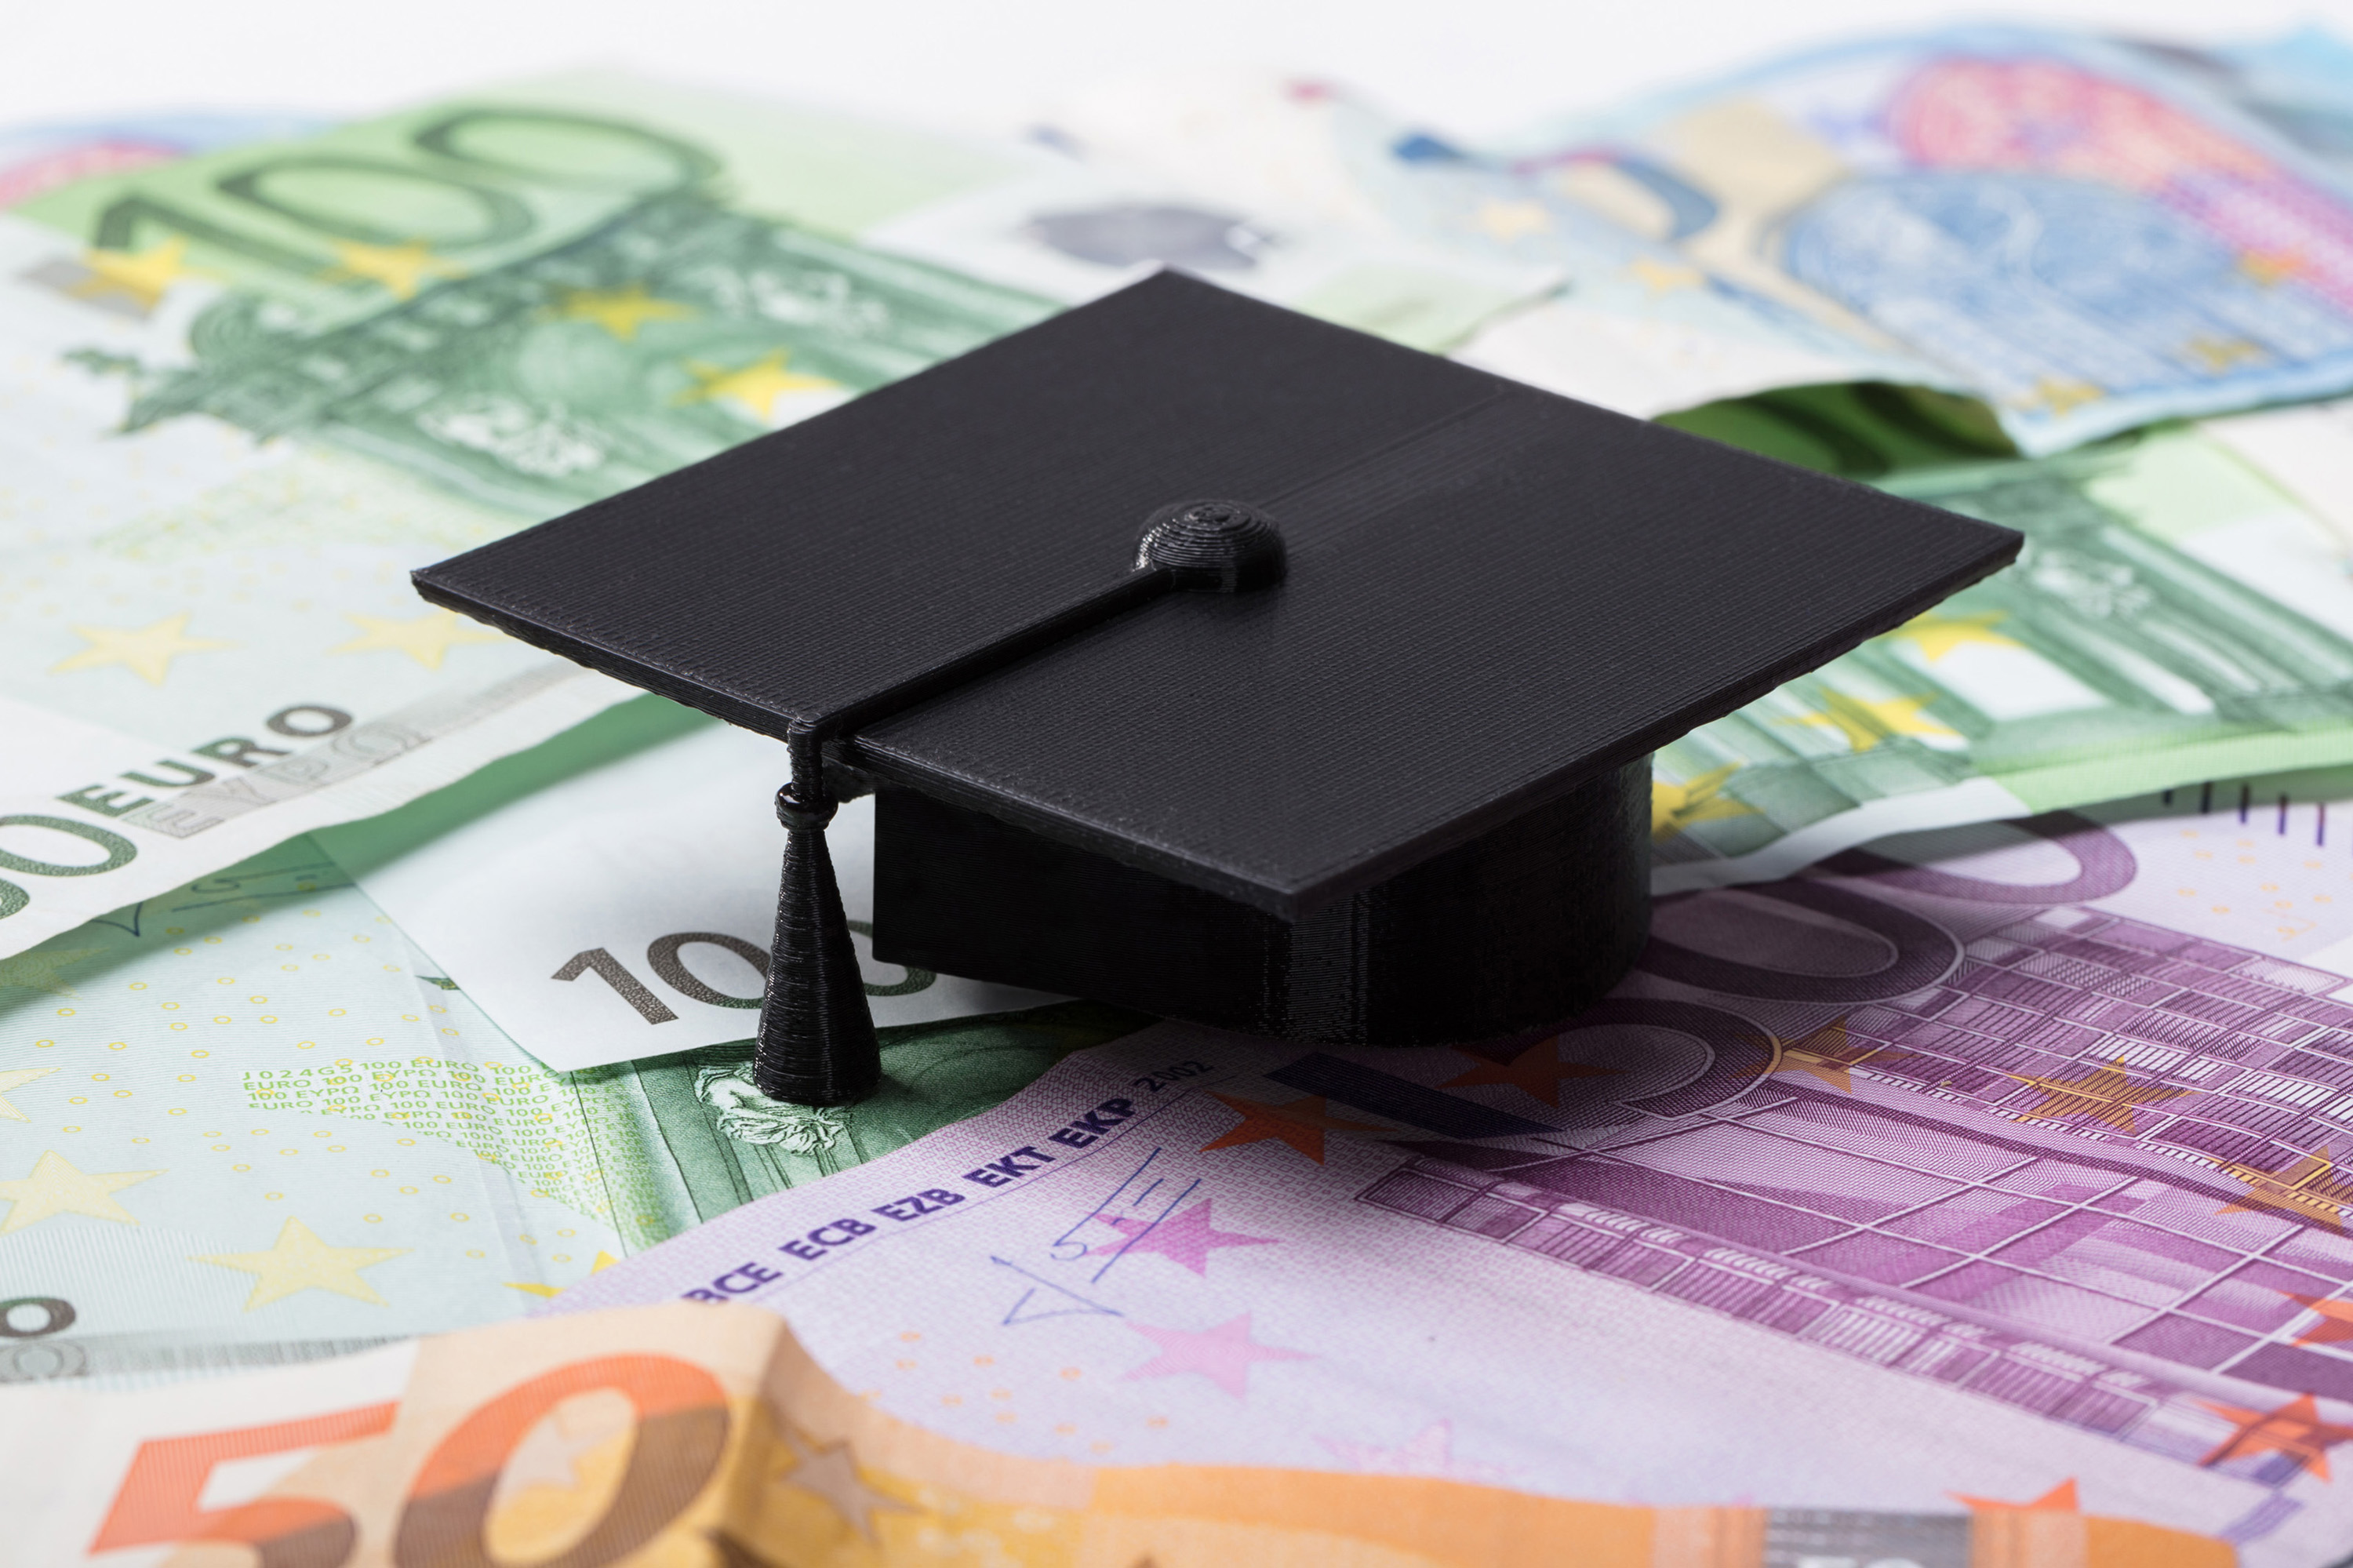 Close-up Of Black Graduation Cap On Euro Banknotes; Shutterstock ID 1032334141; Purchase Order: Leistungsstipendium; Job: ; Client/Licensee: ; Other: